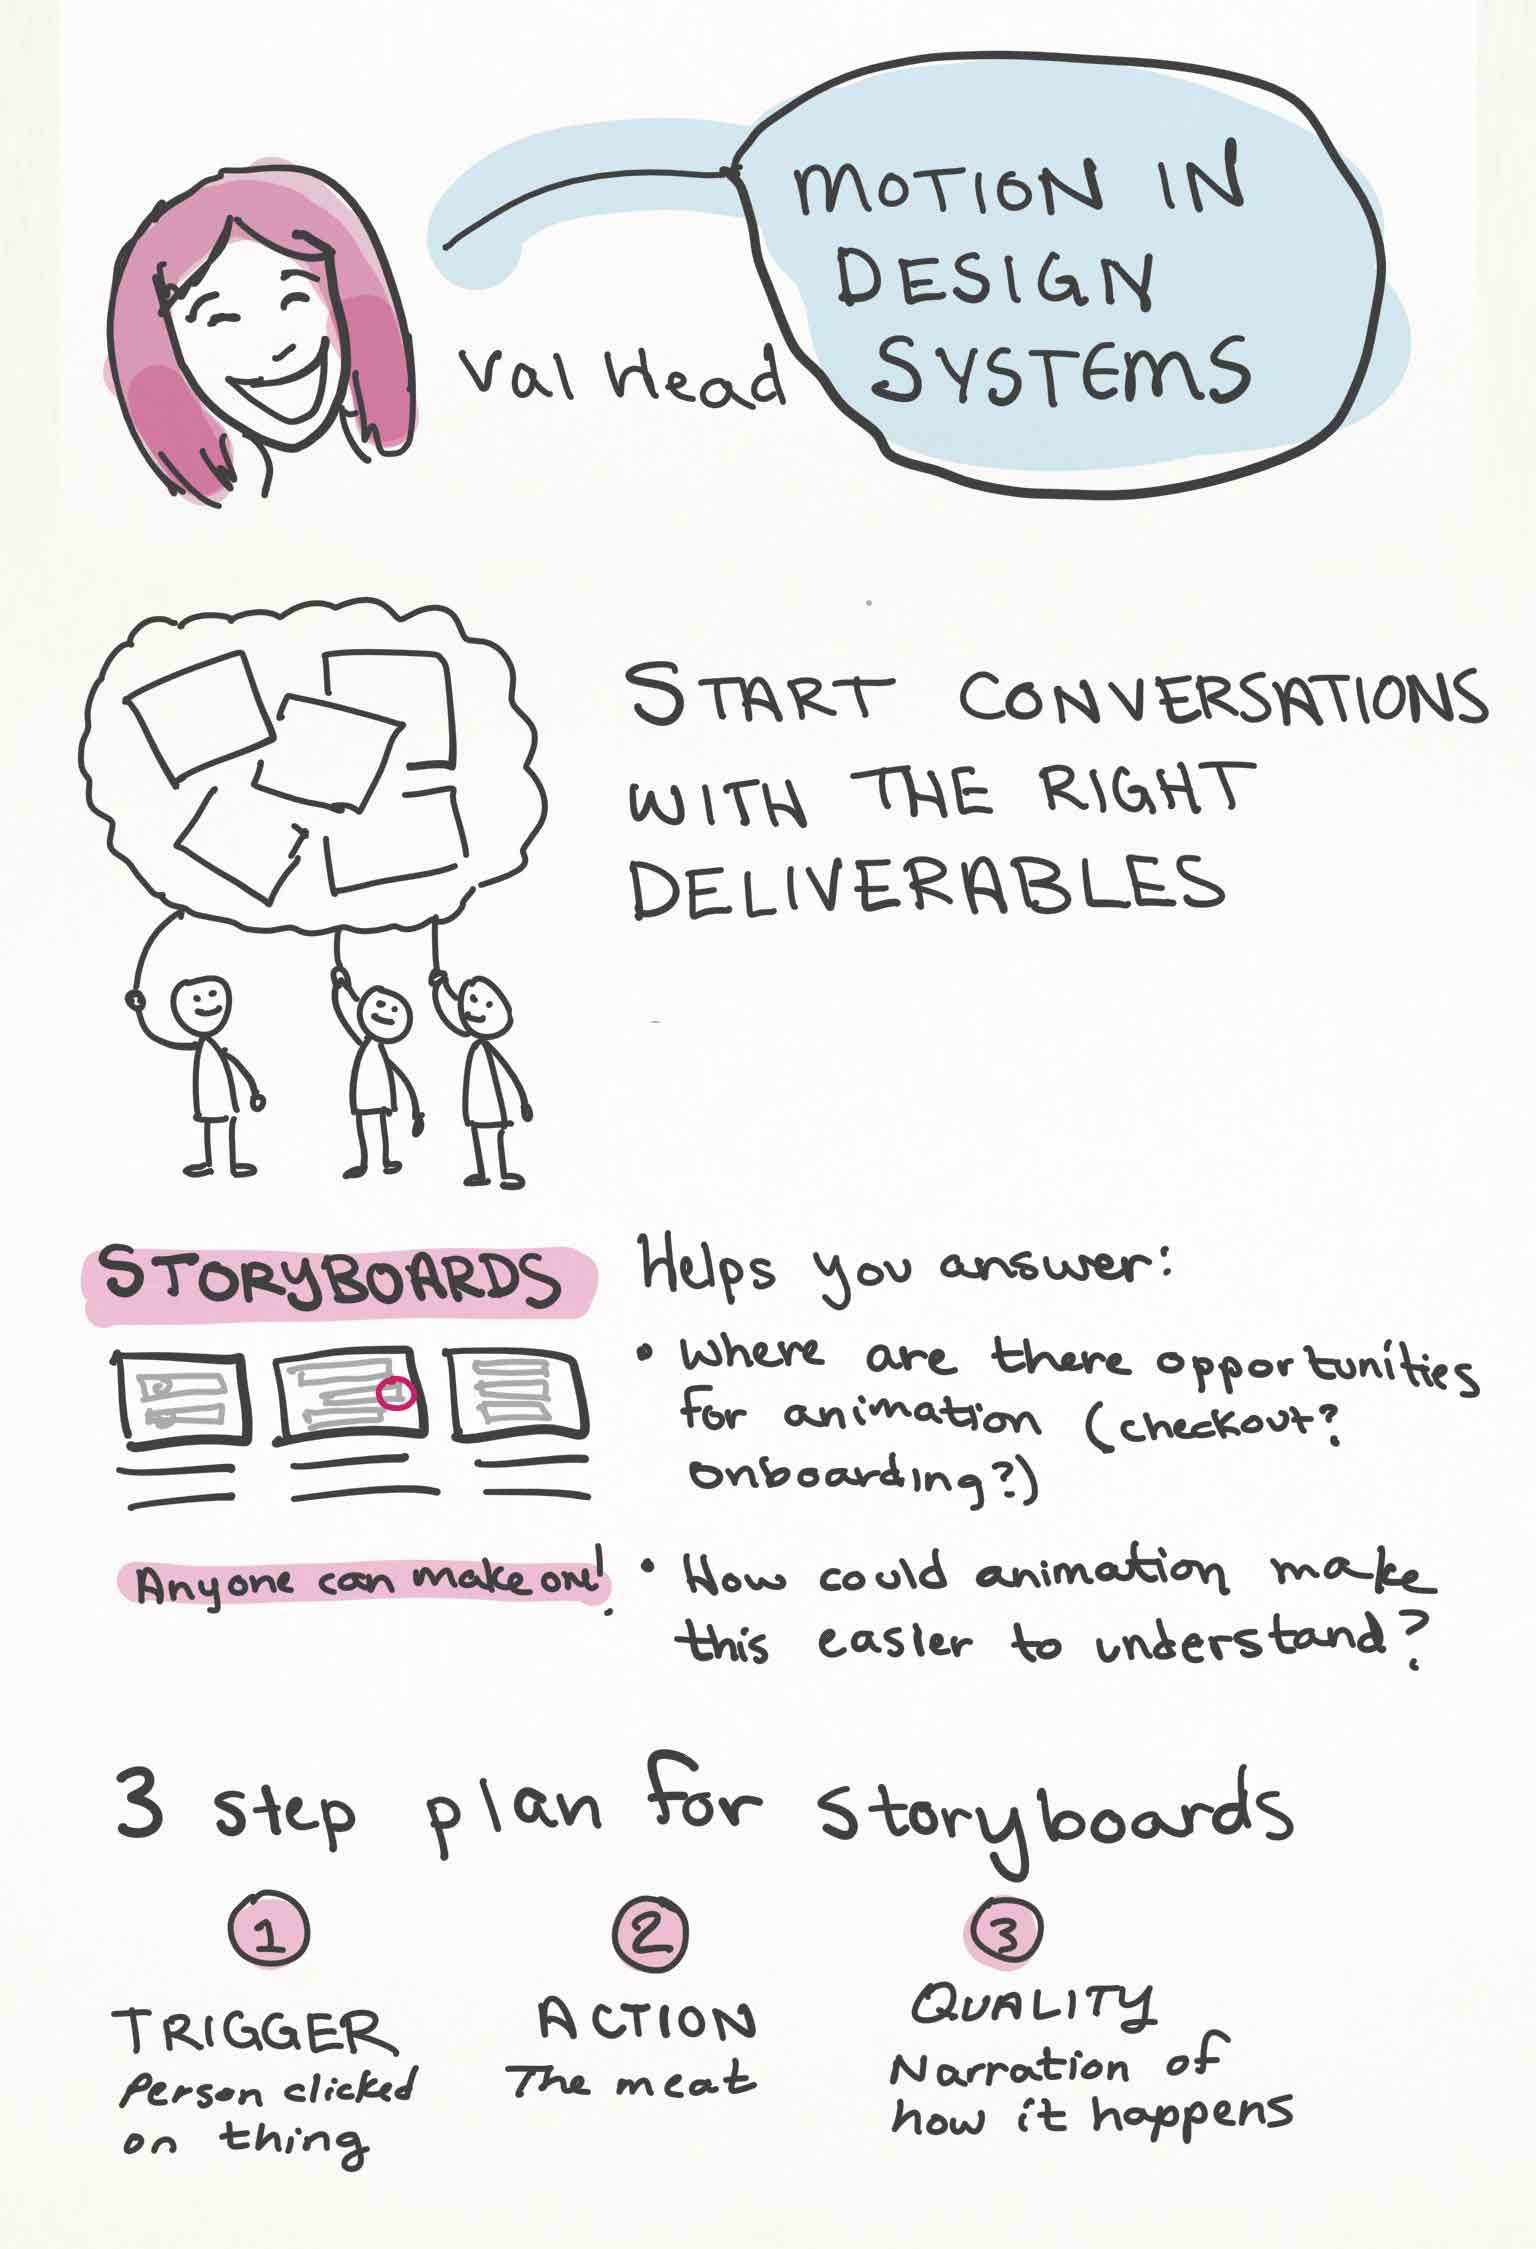 Sketchnotes page 1 from val head's talk